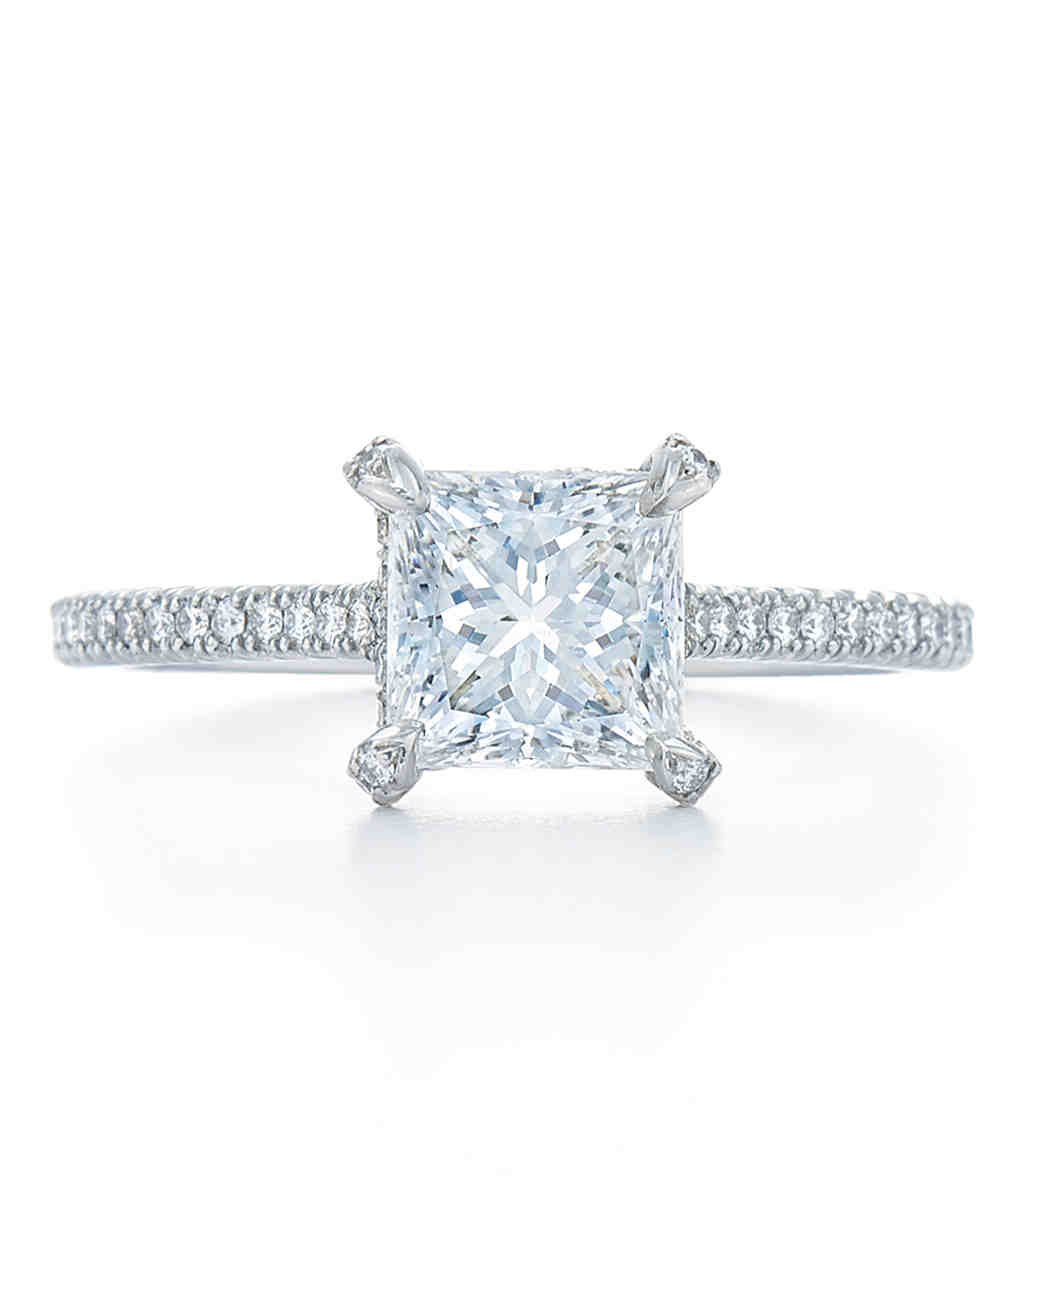 PrincessCut Diamond Engagement Rings Martha Stewart Weddings